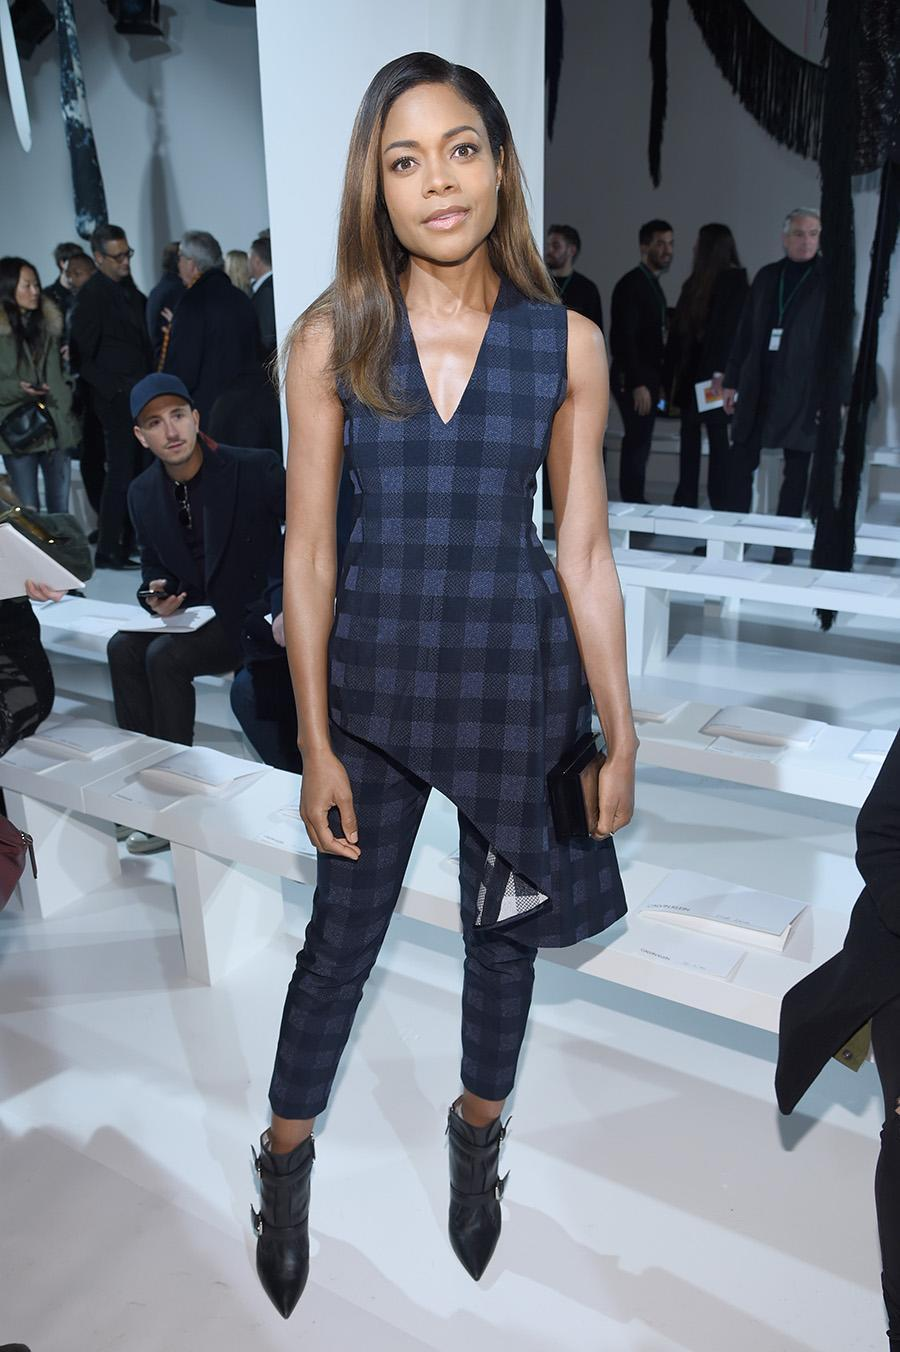 """<p><i>Moonlight</i> actress Naomie Harris wore a blue checkered ensemble to sit front row at the Calvin Klein Collection show. She later called the show """"stunning"""" on her Instagram page. (Photo: Getty Images) </p>"""